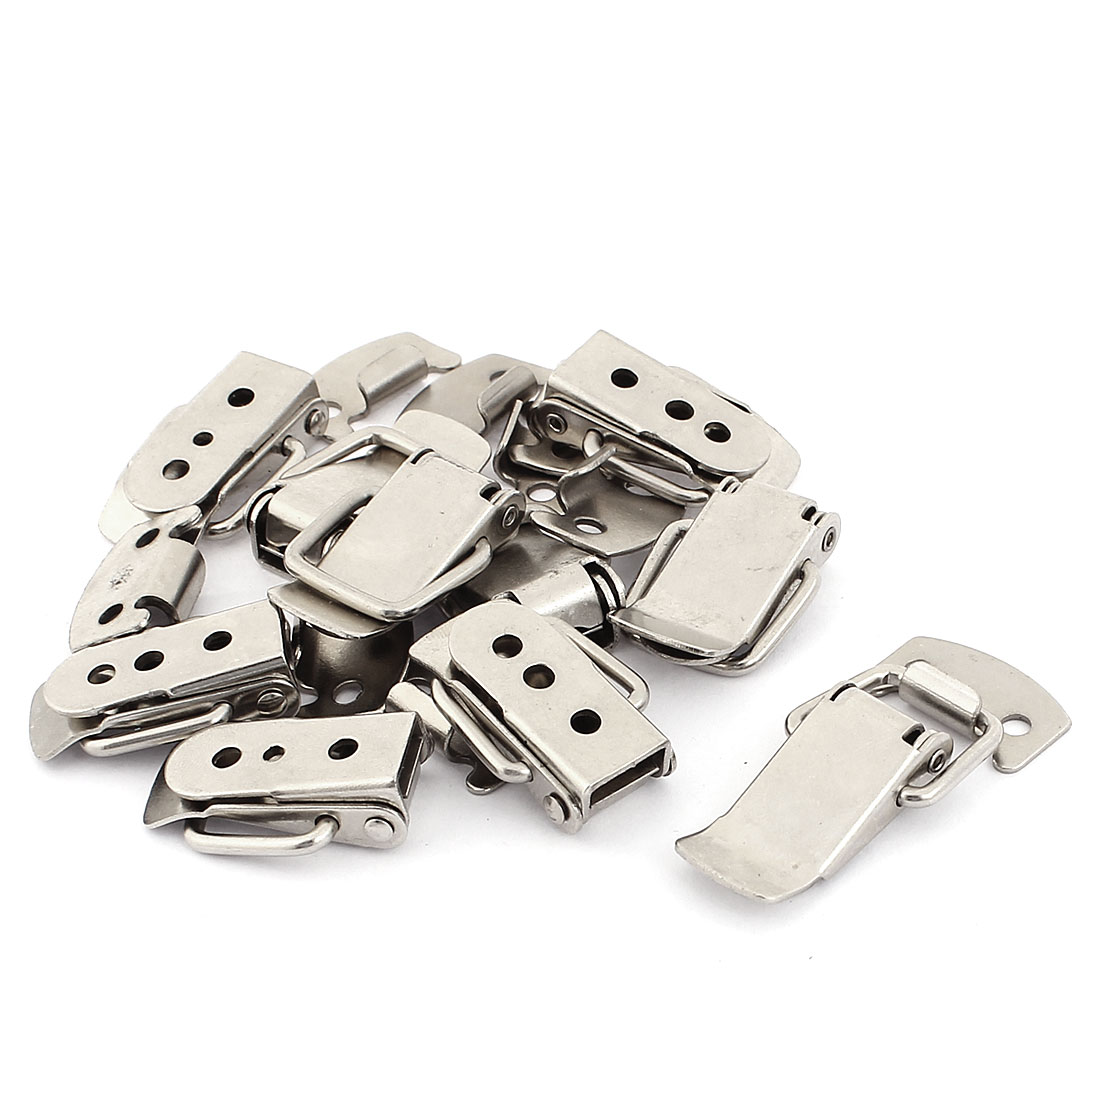 10 Pcs Case Box Chest Spring Suitcase Draw Lock Toggle Latch